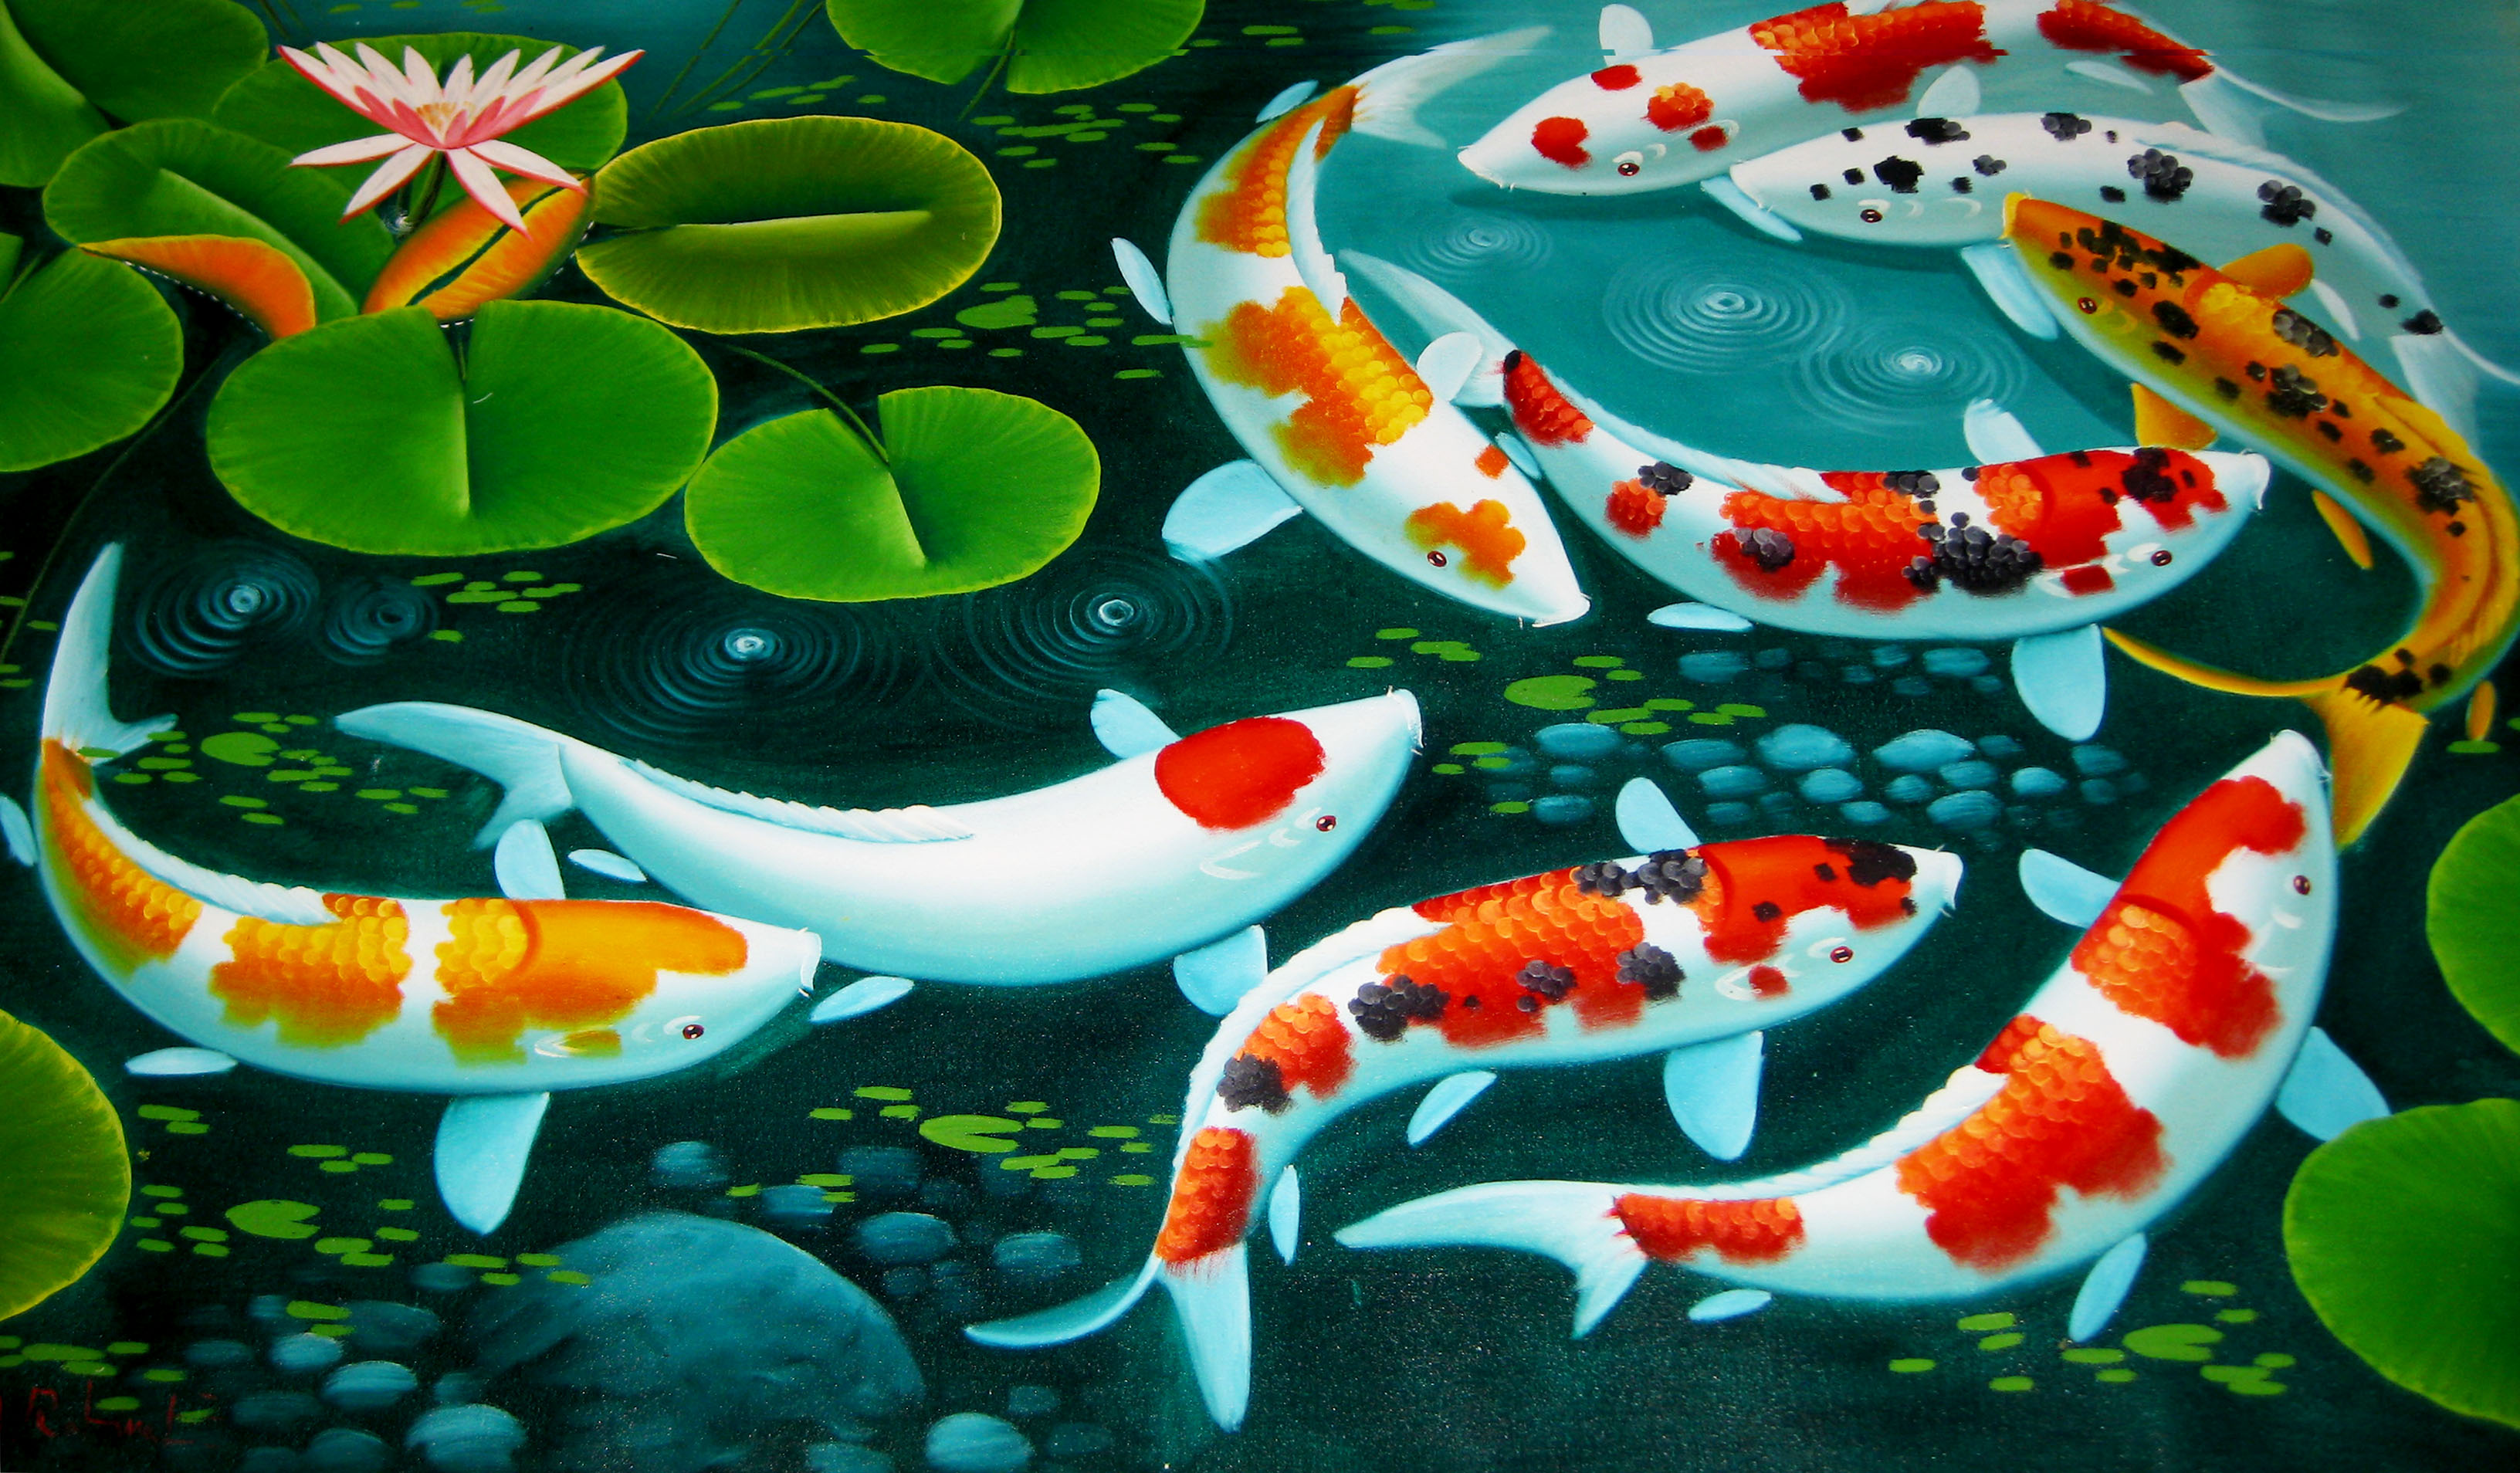 Koi pond wallpaper wallpapersafari for Koi fish in pool